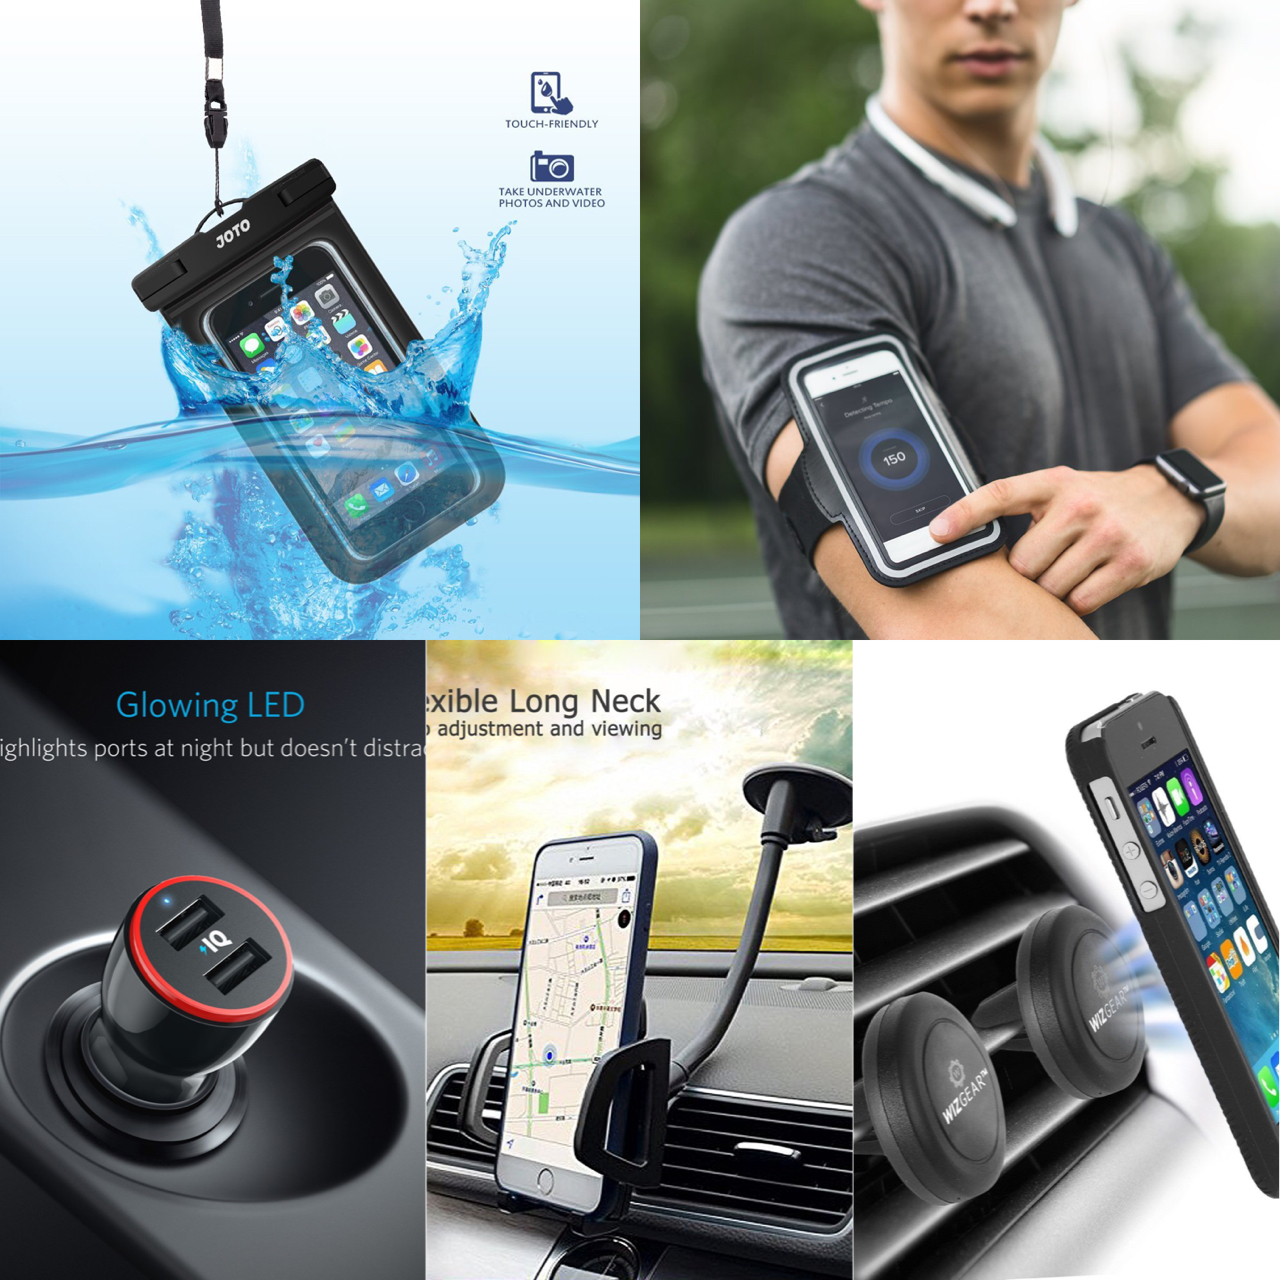 Top 10 Best Cell Phone Accessories-20